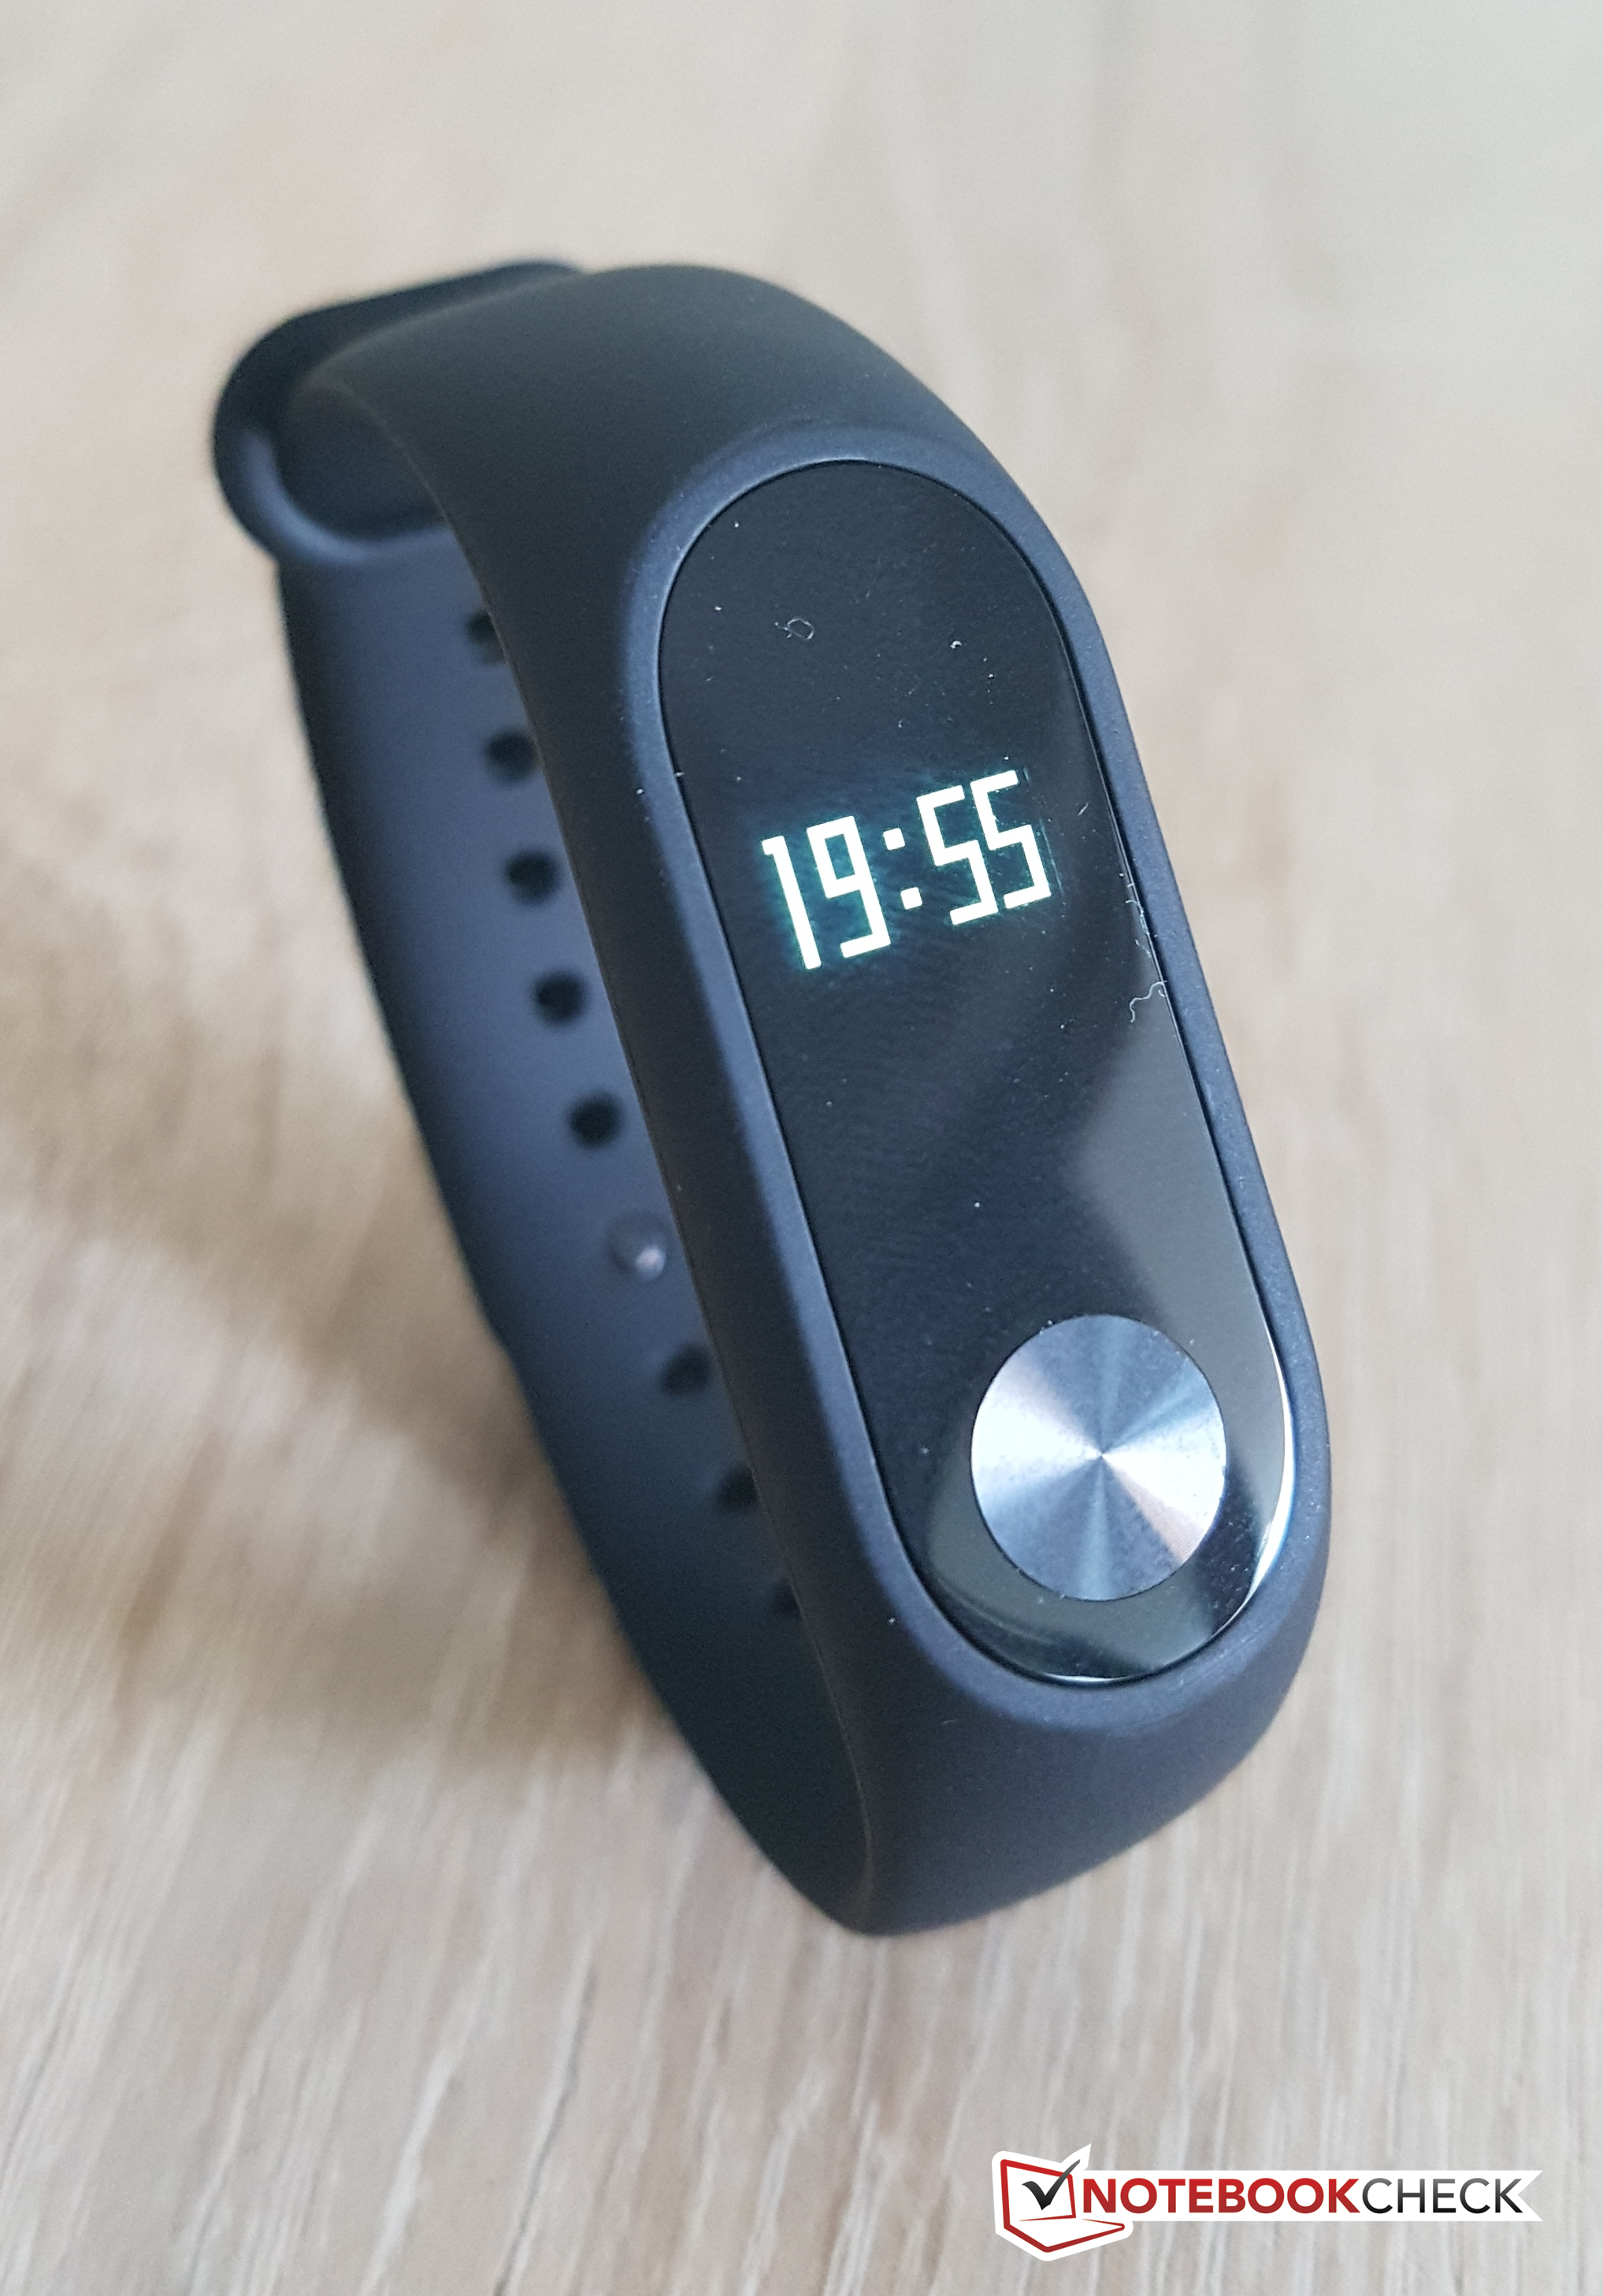 xiaomi mi band 2 smartband review reviews. Black Bedroom Furniture Sets. Home Design Ideas